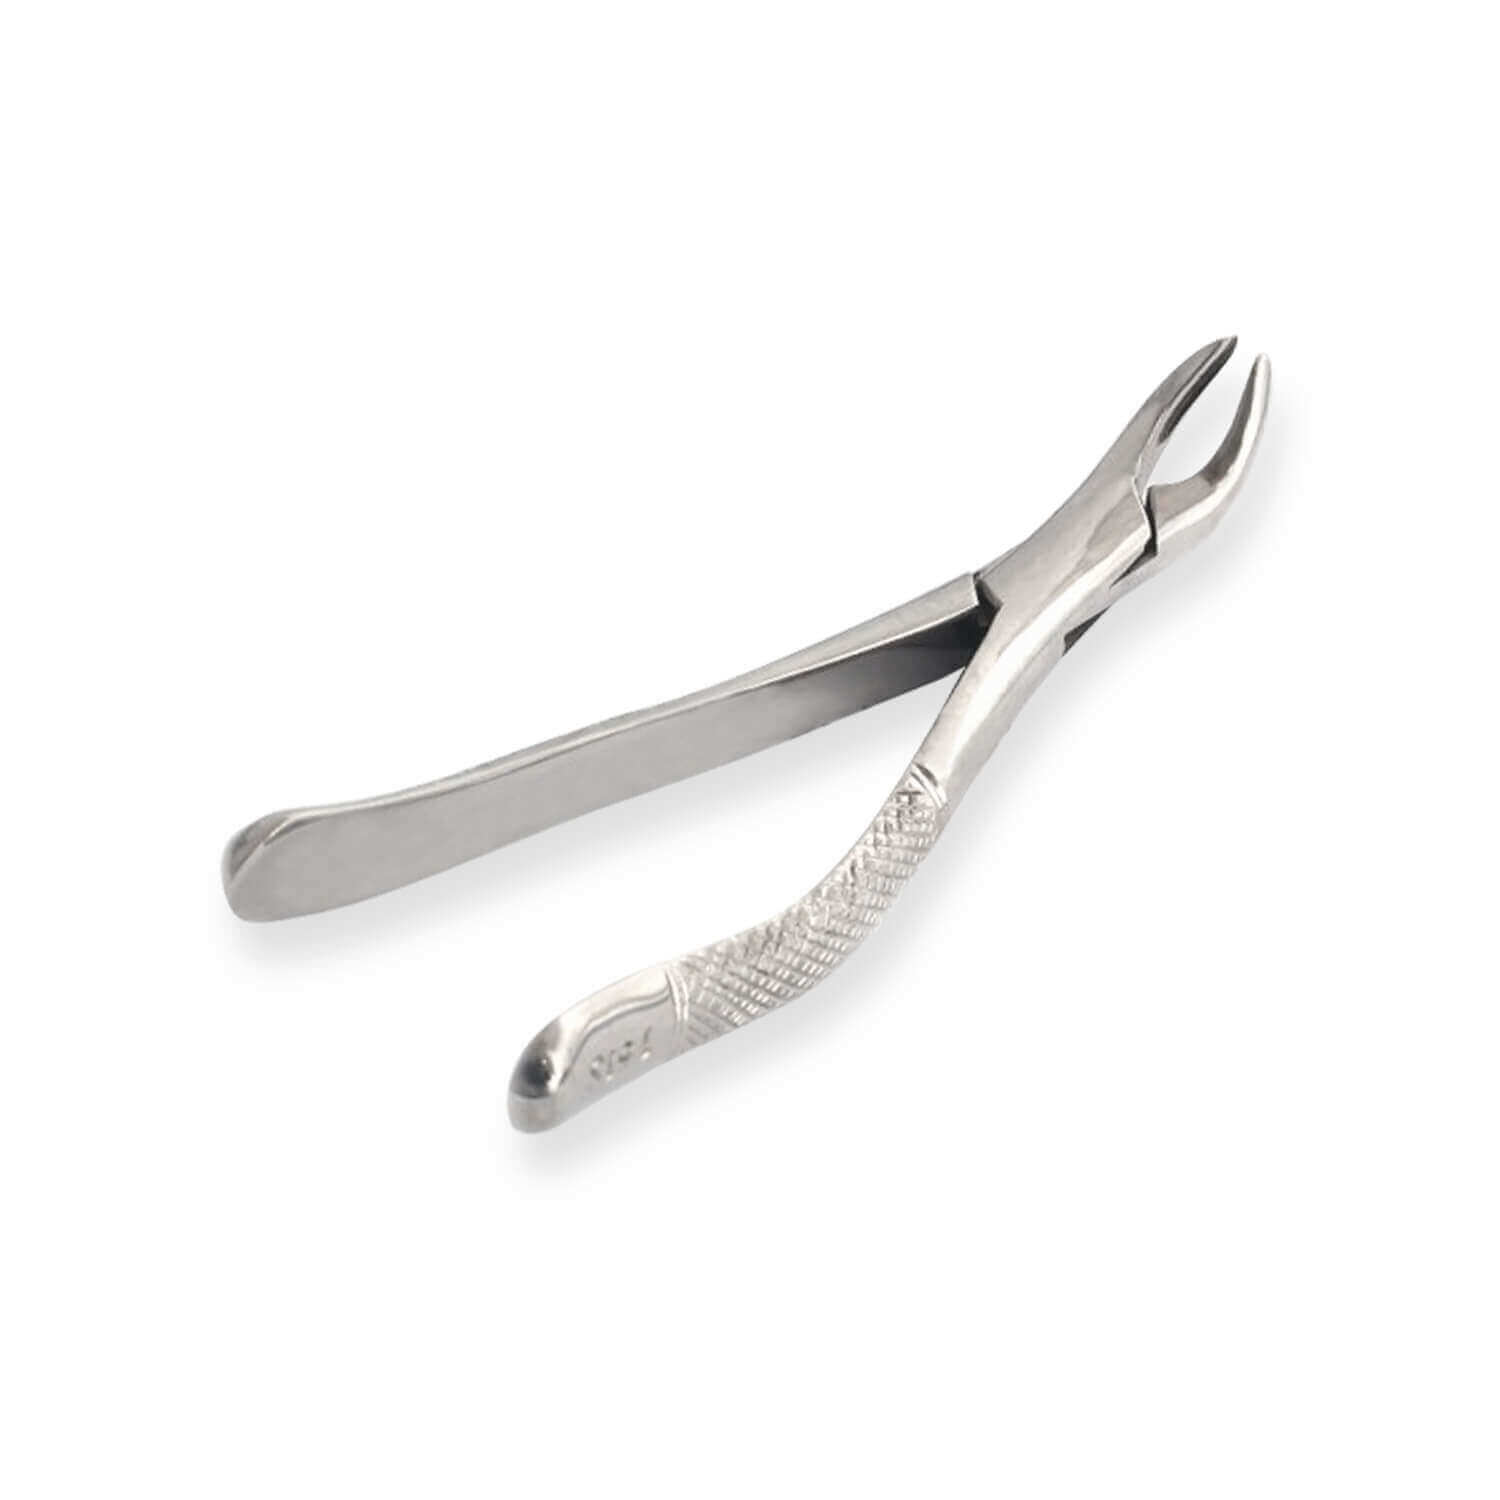 Pedo Extracting forceps Dental Surgical Instrument 151S